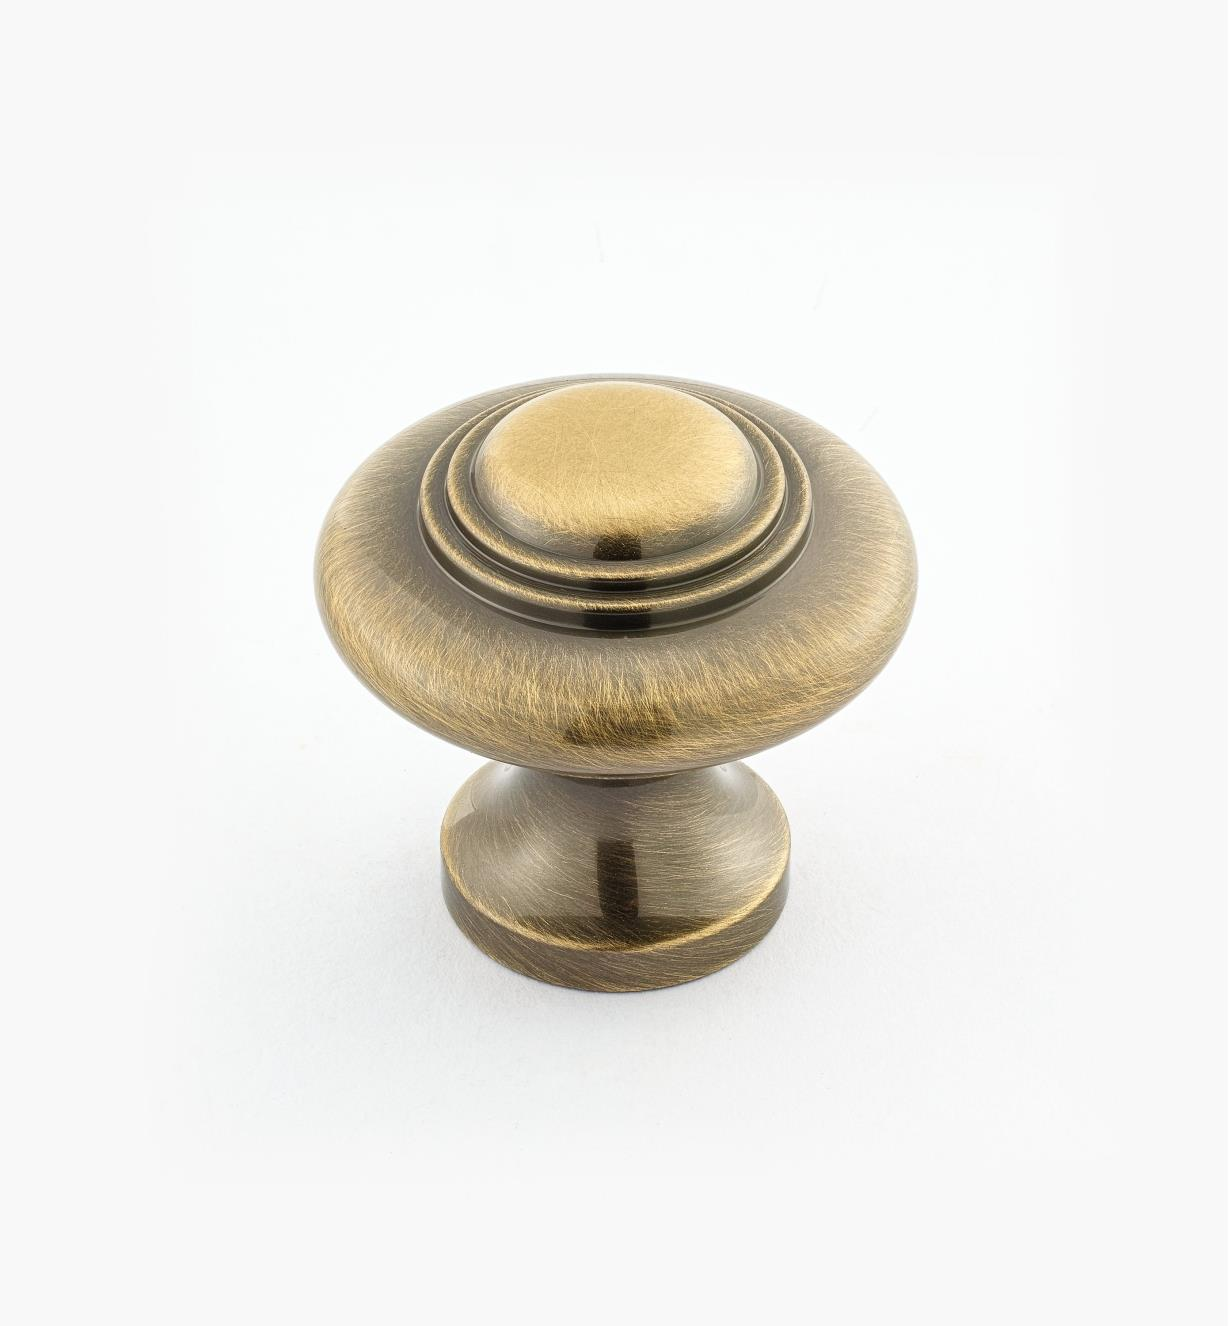 "02W3033 - 1 5/16"" x 1 1/4"" Cast Brass Ring Knob, Antique Brass"